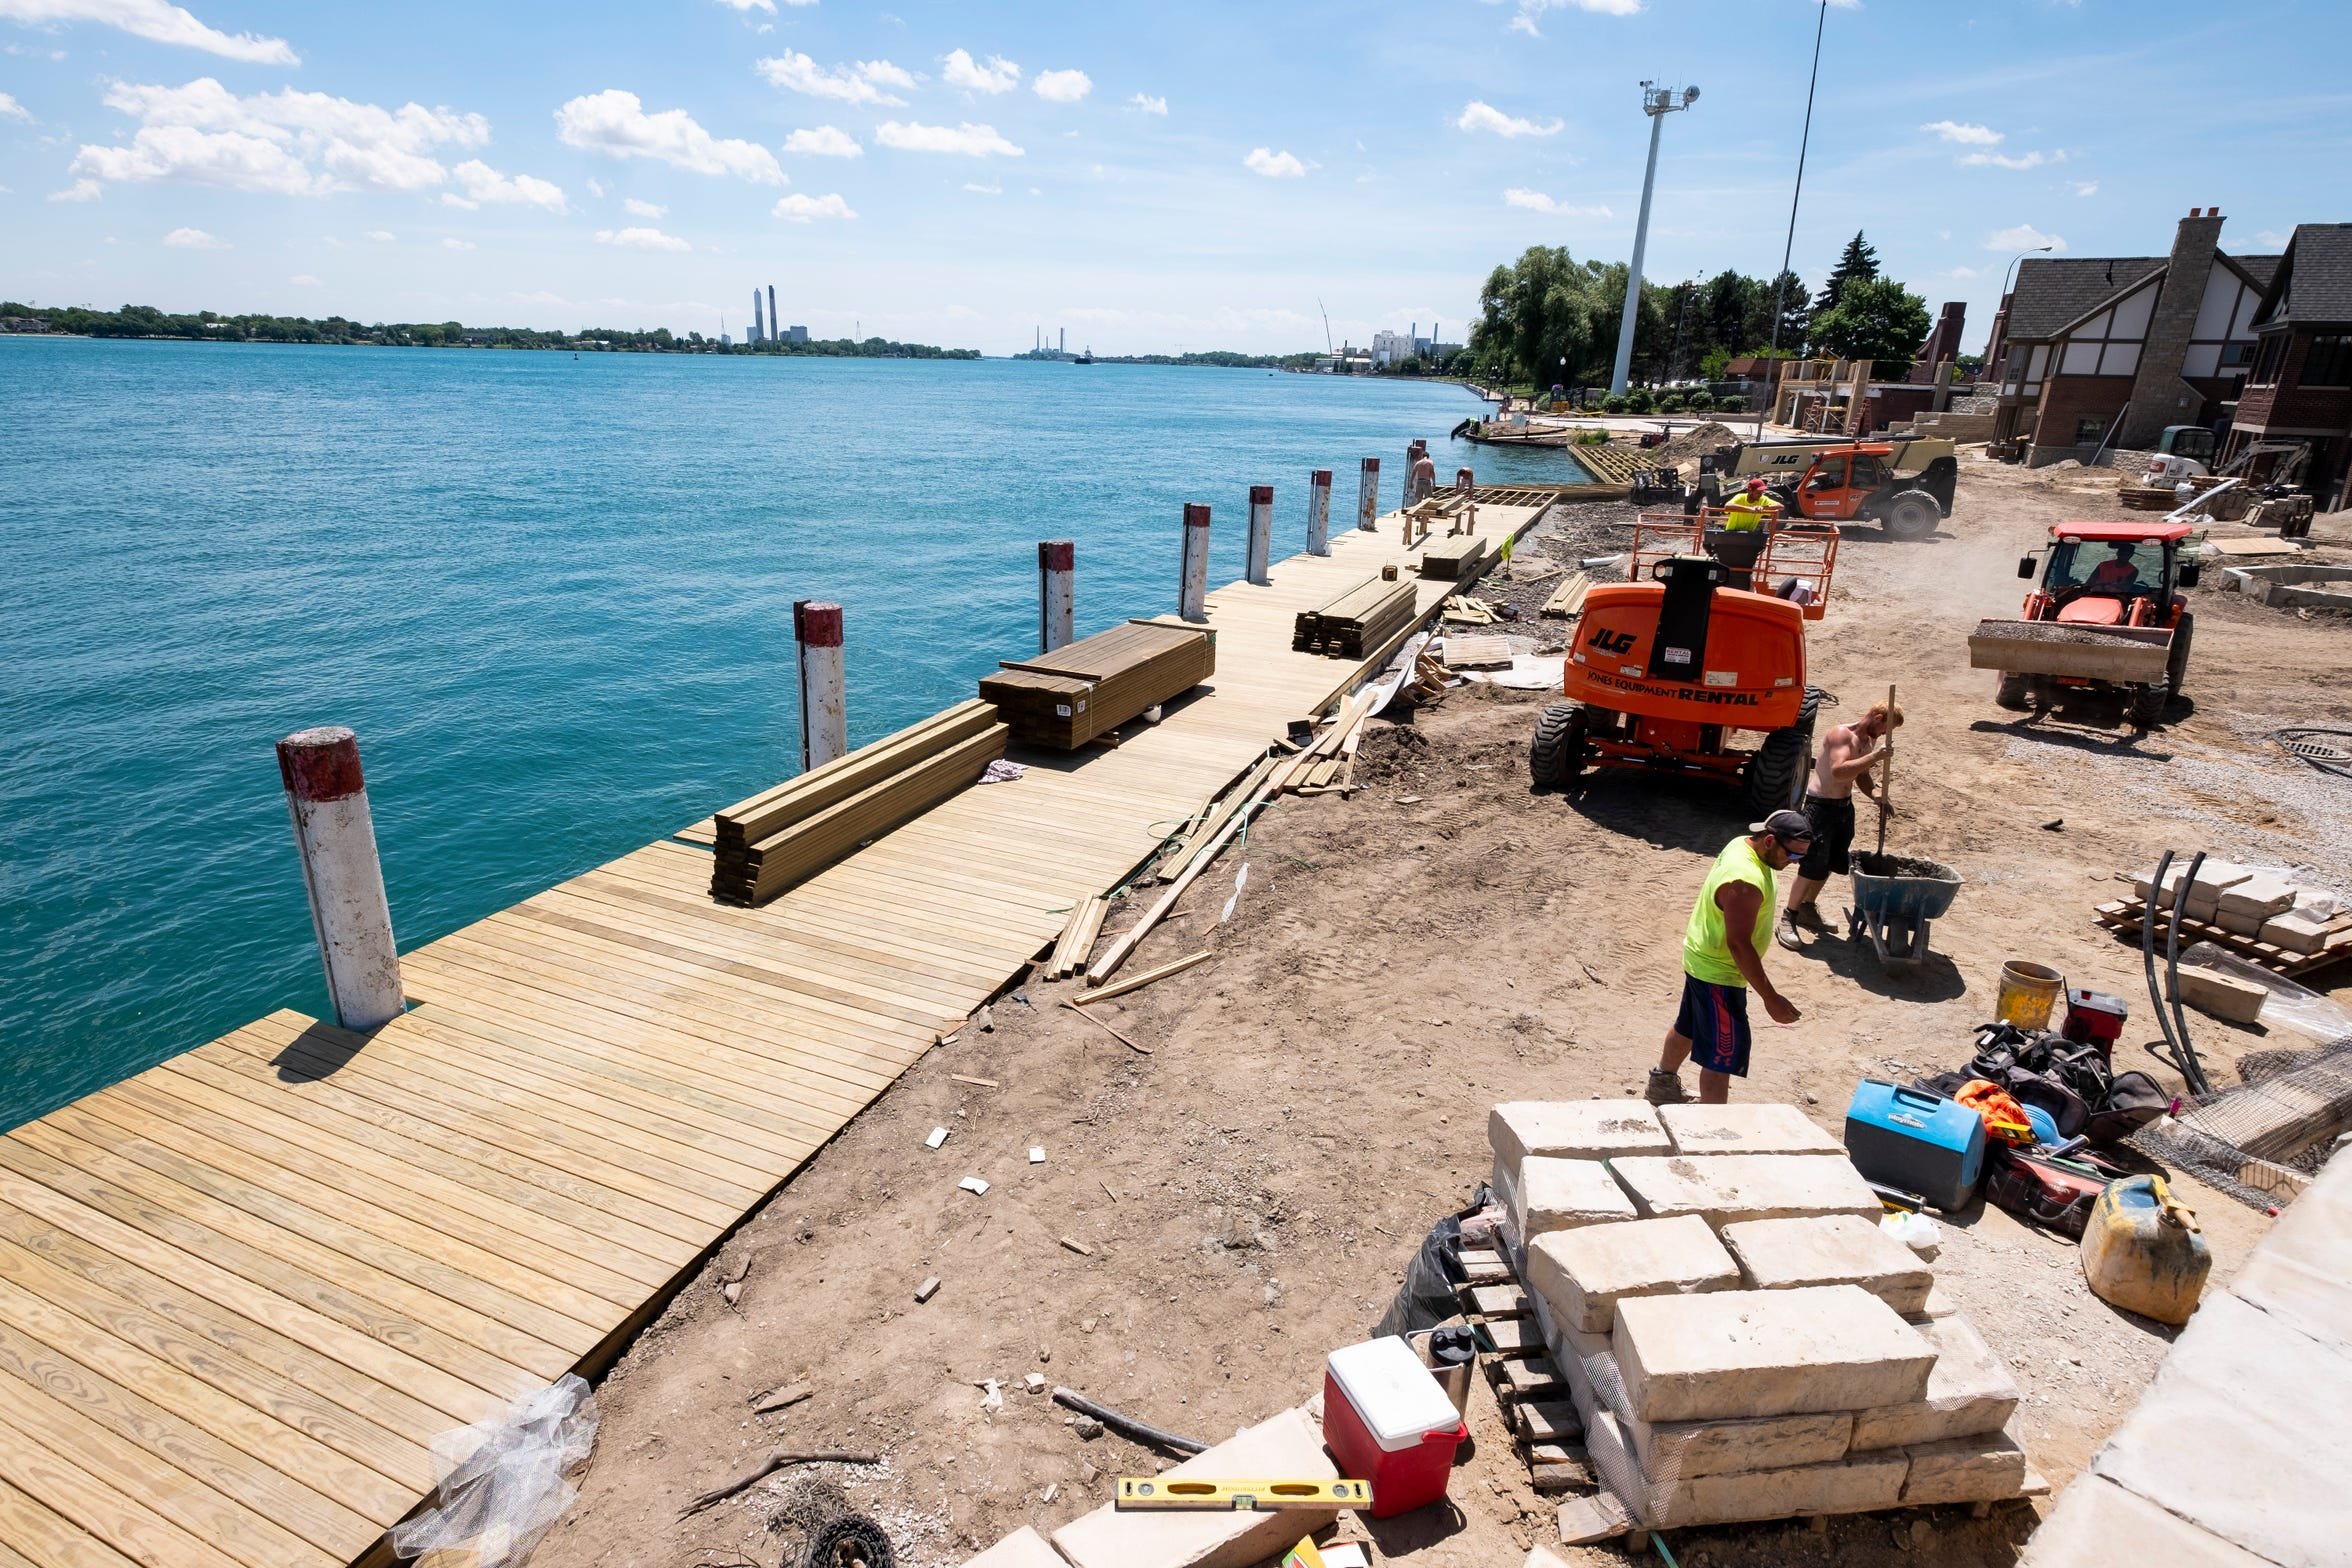 Even though the boardwalk behind the St. Clair Inn will be private, it is being made to match the rest of the boardwalk along the St. Clair River.